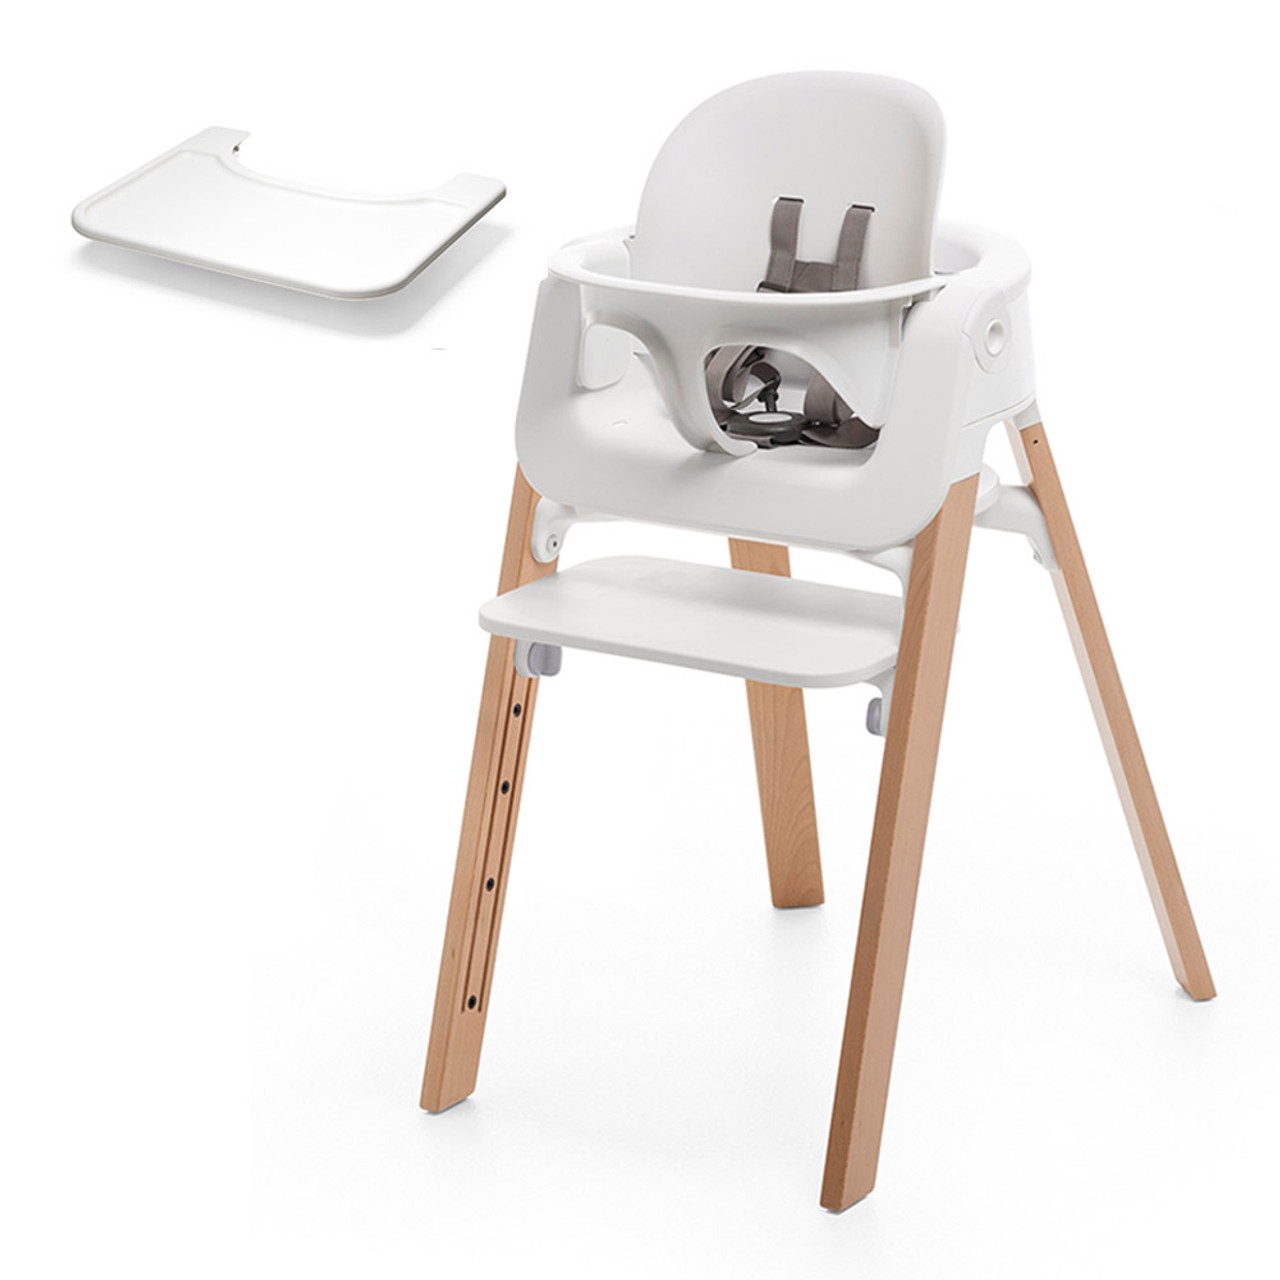 Stokke Maxi Cosi Car Seat Stokke Steps High Chair With Baby Set And Tray White Seat With Natural Legs